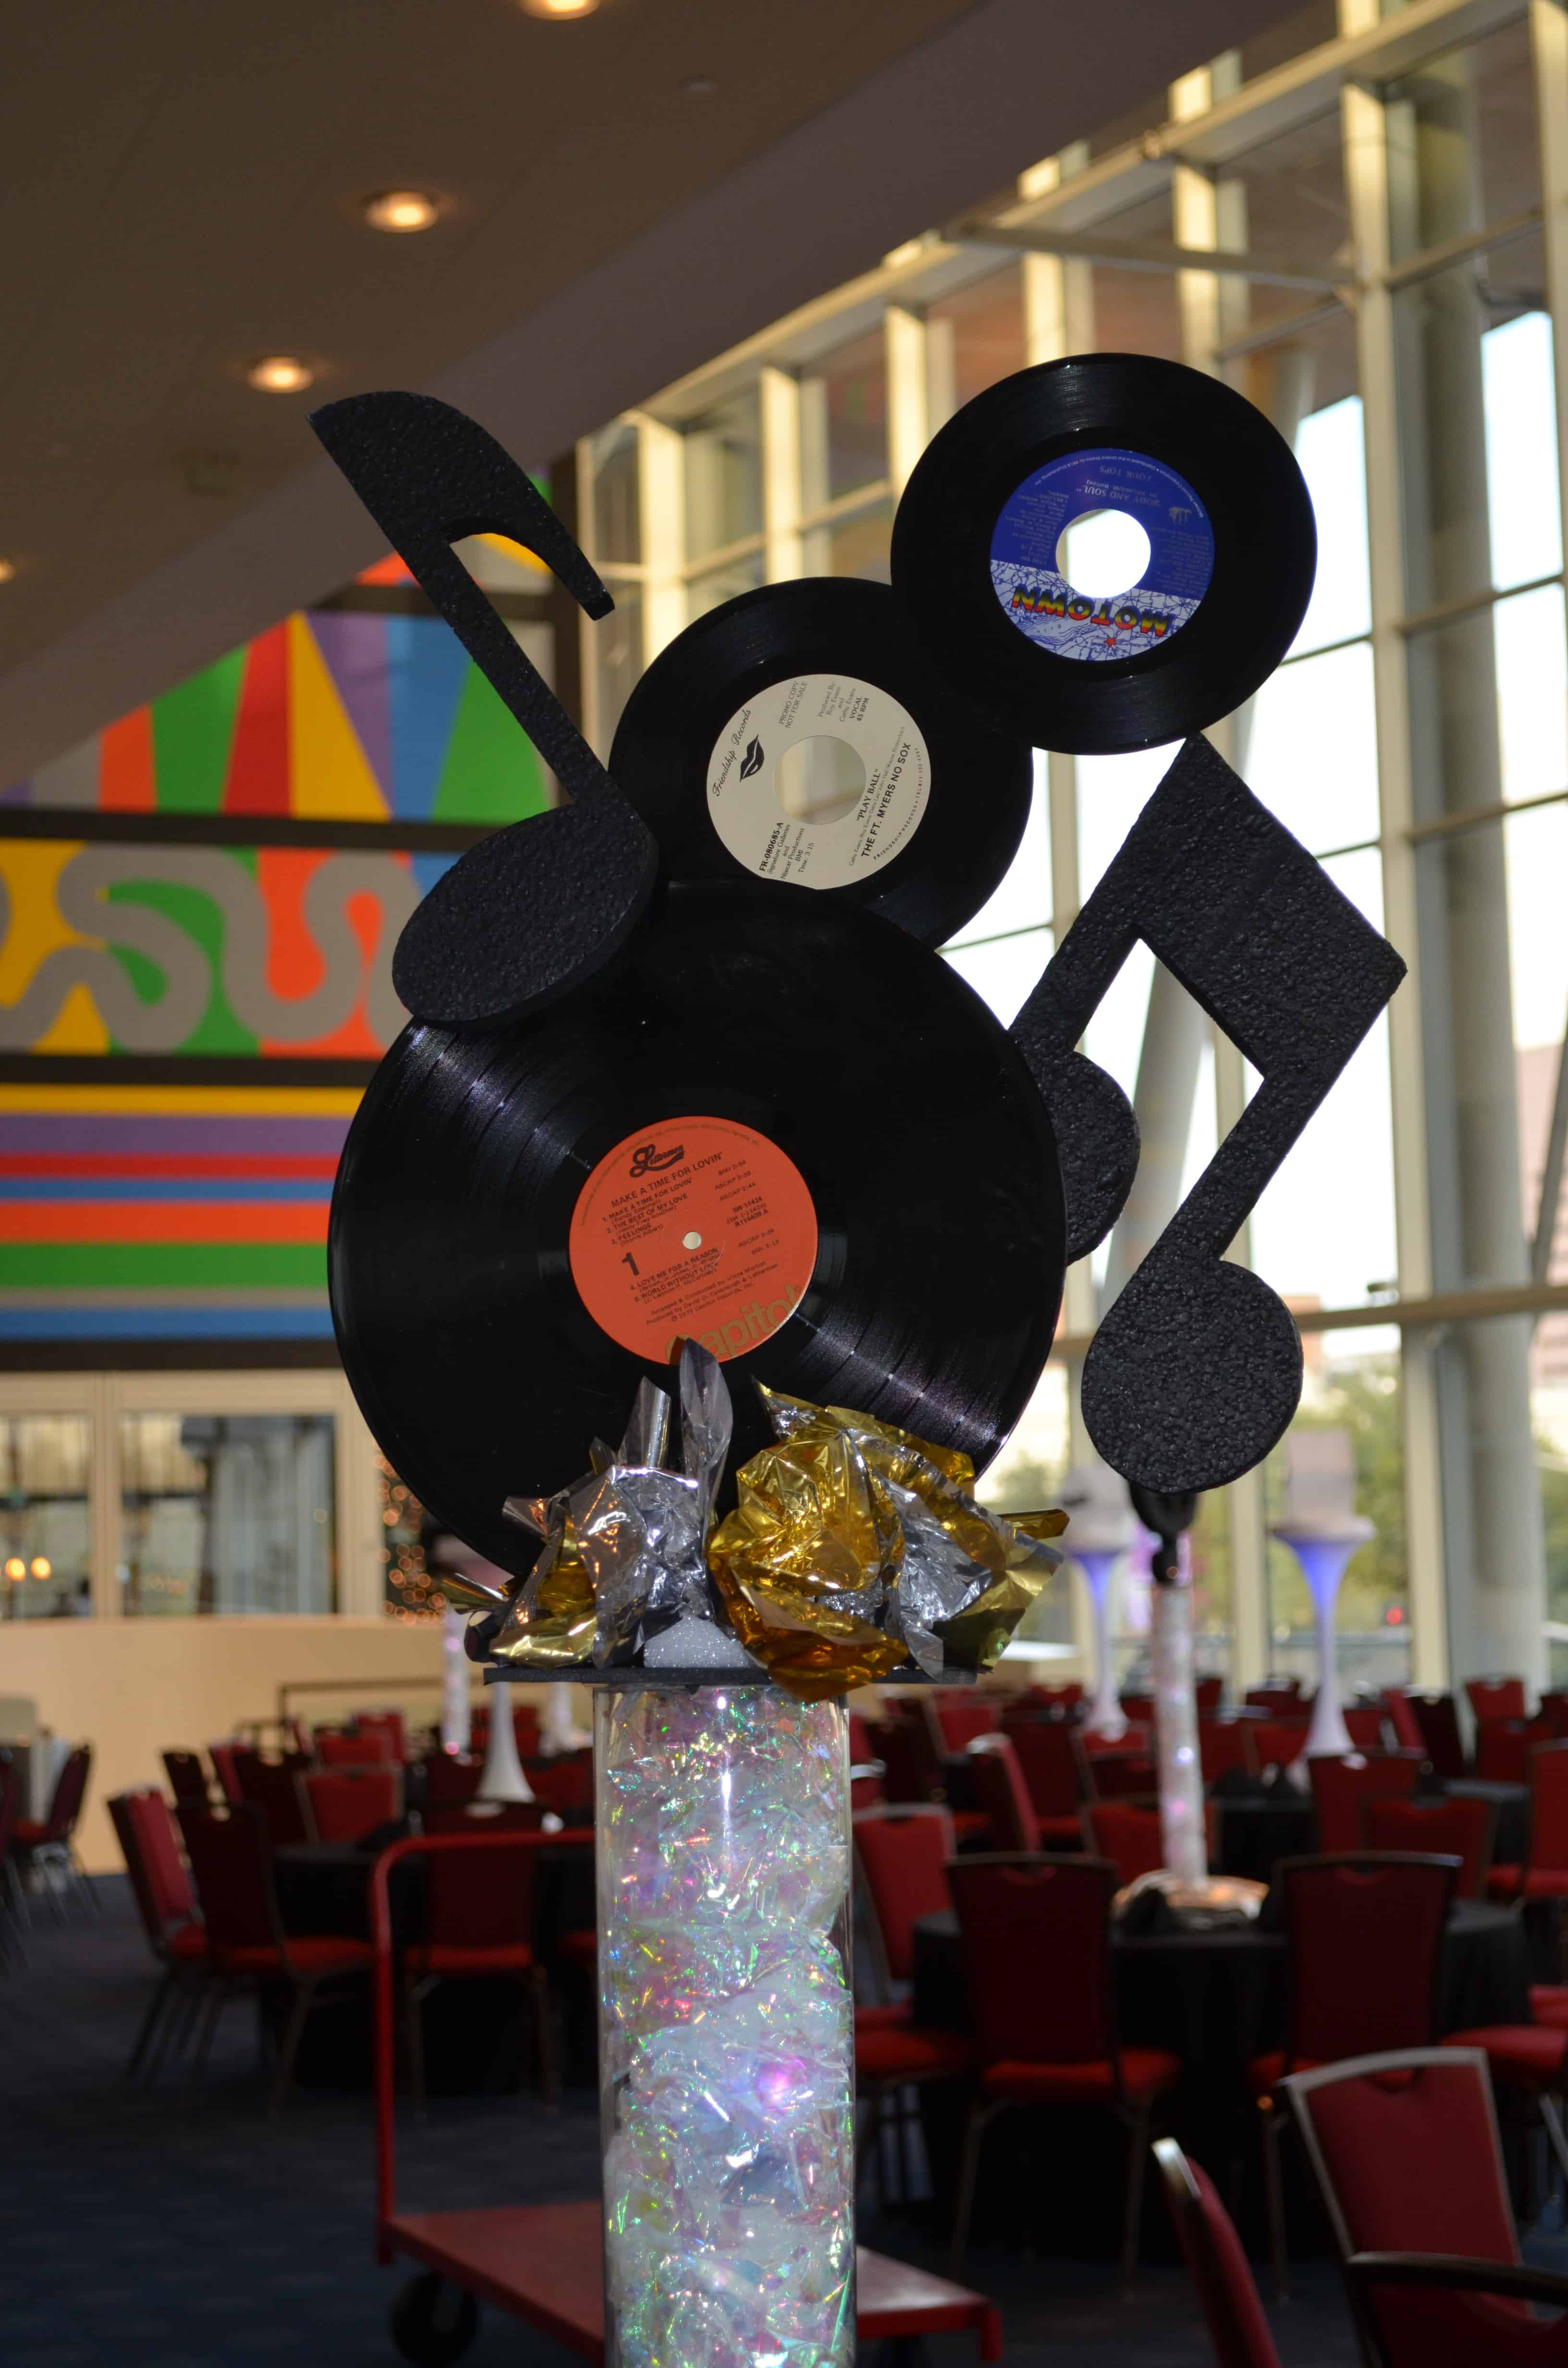 Upcycled record and music note centre pieces